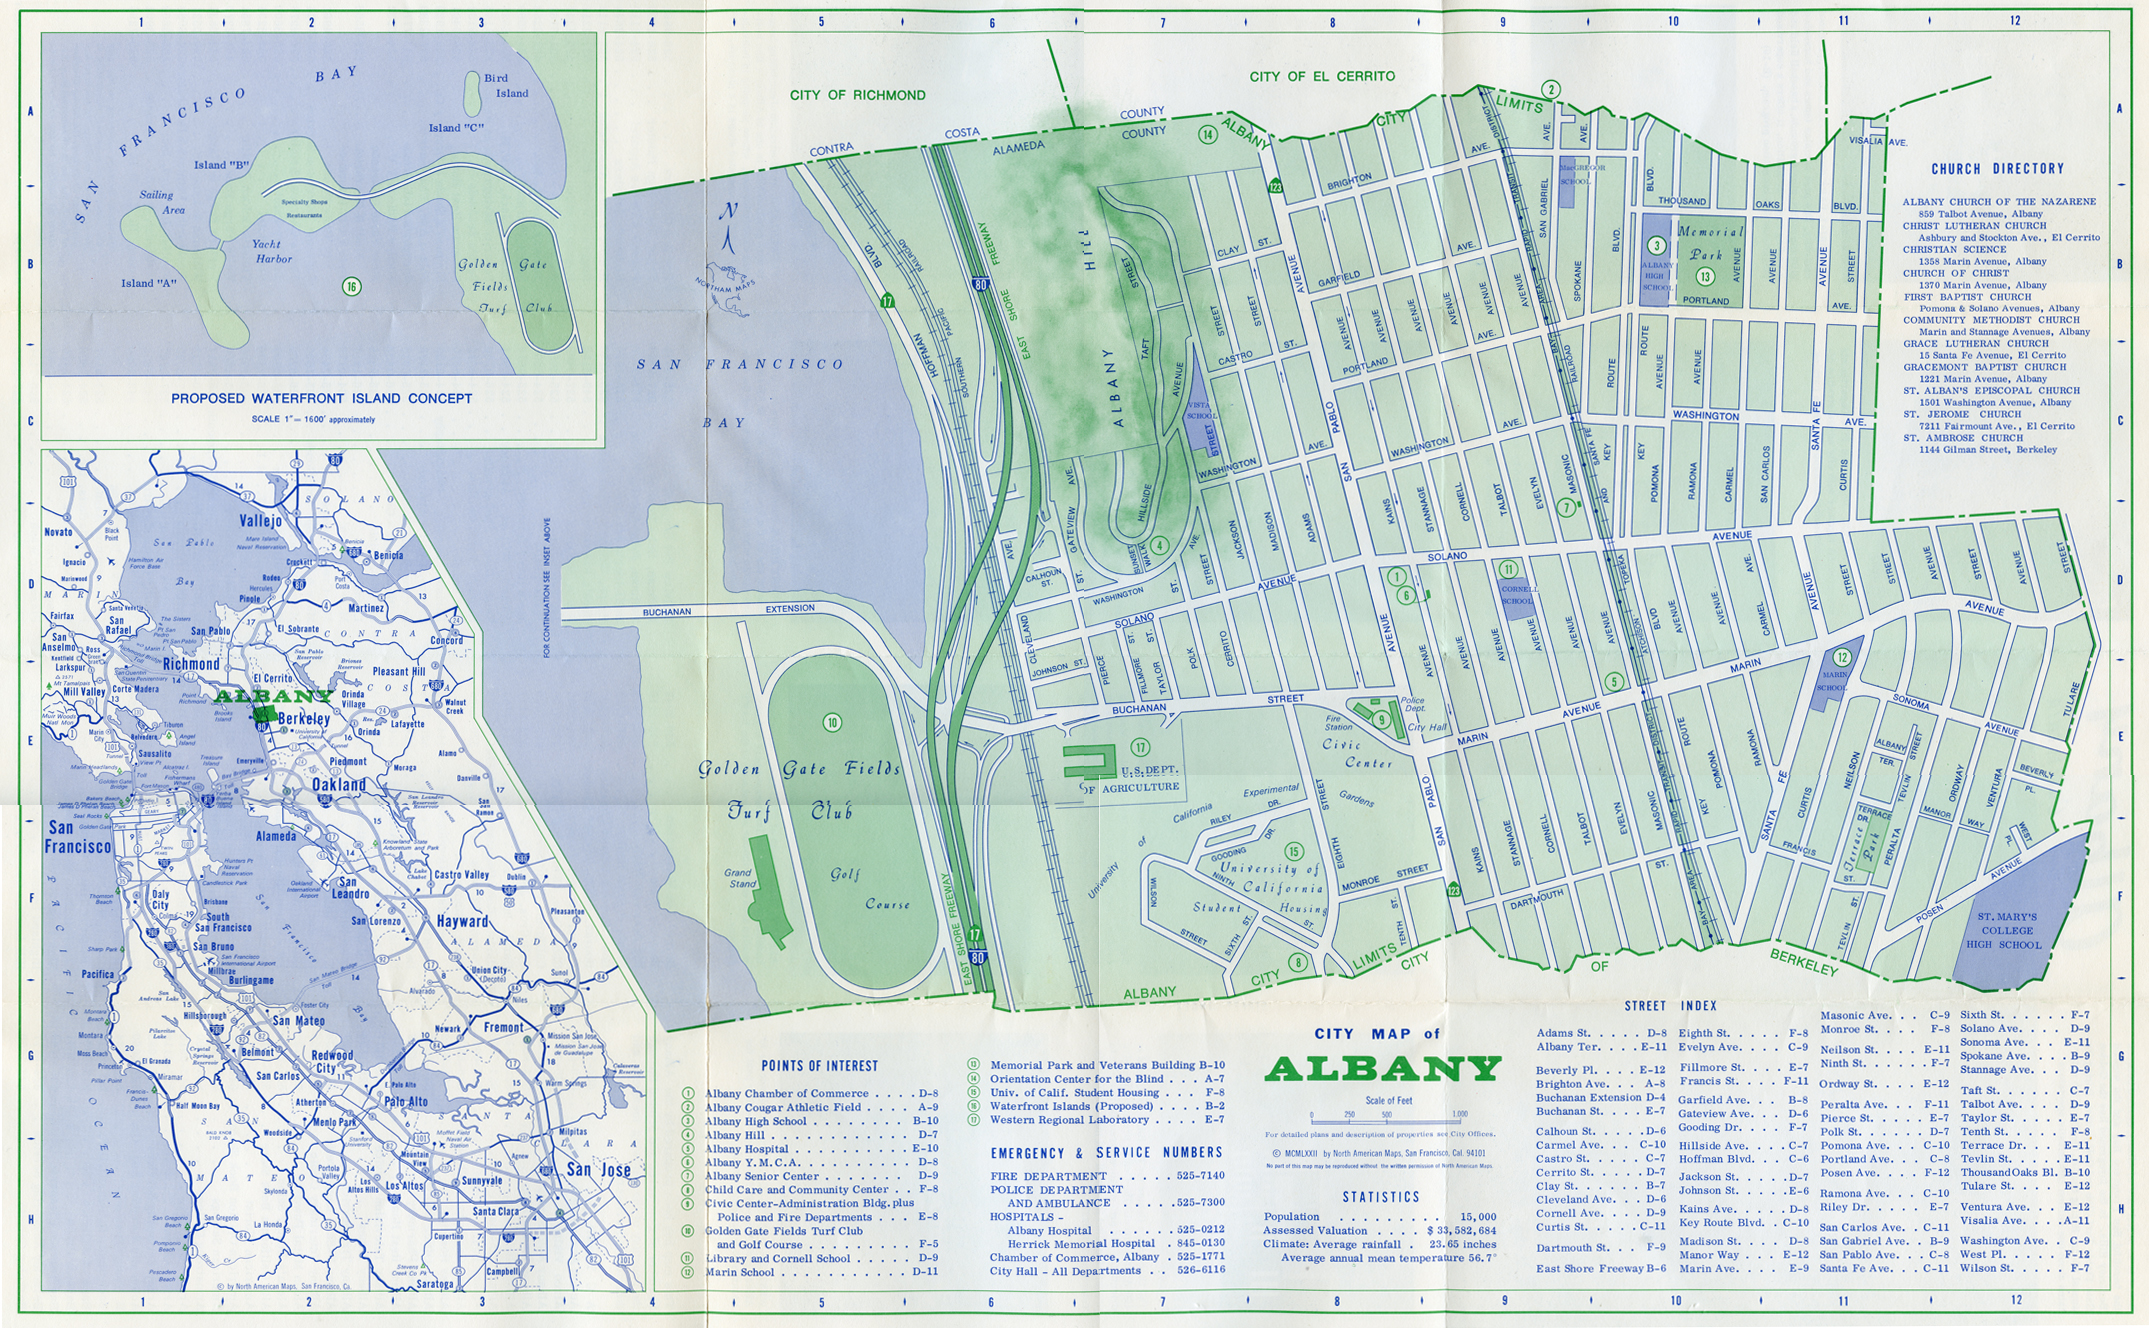 Albany, California, old postcards and other historic images ...